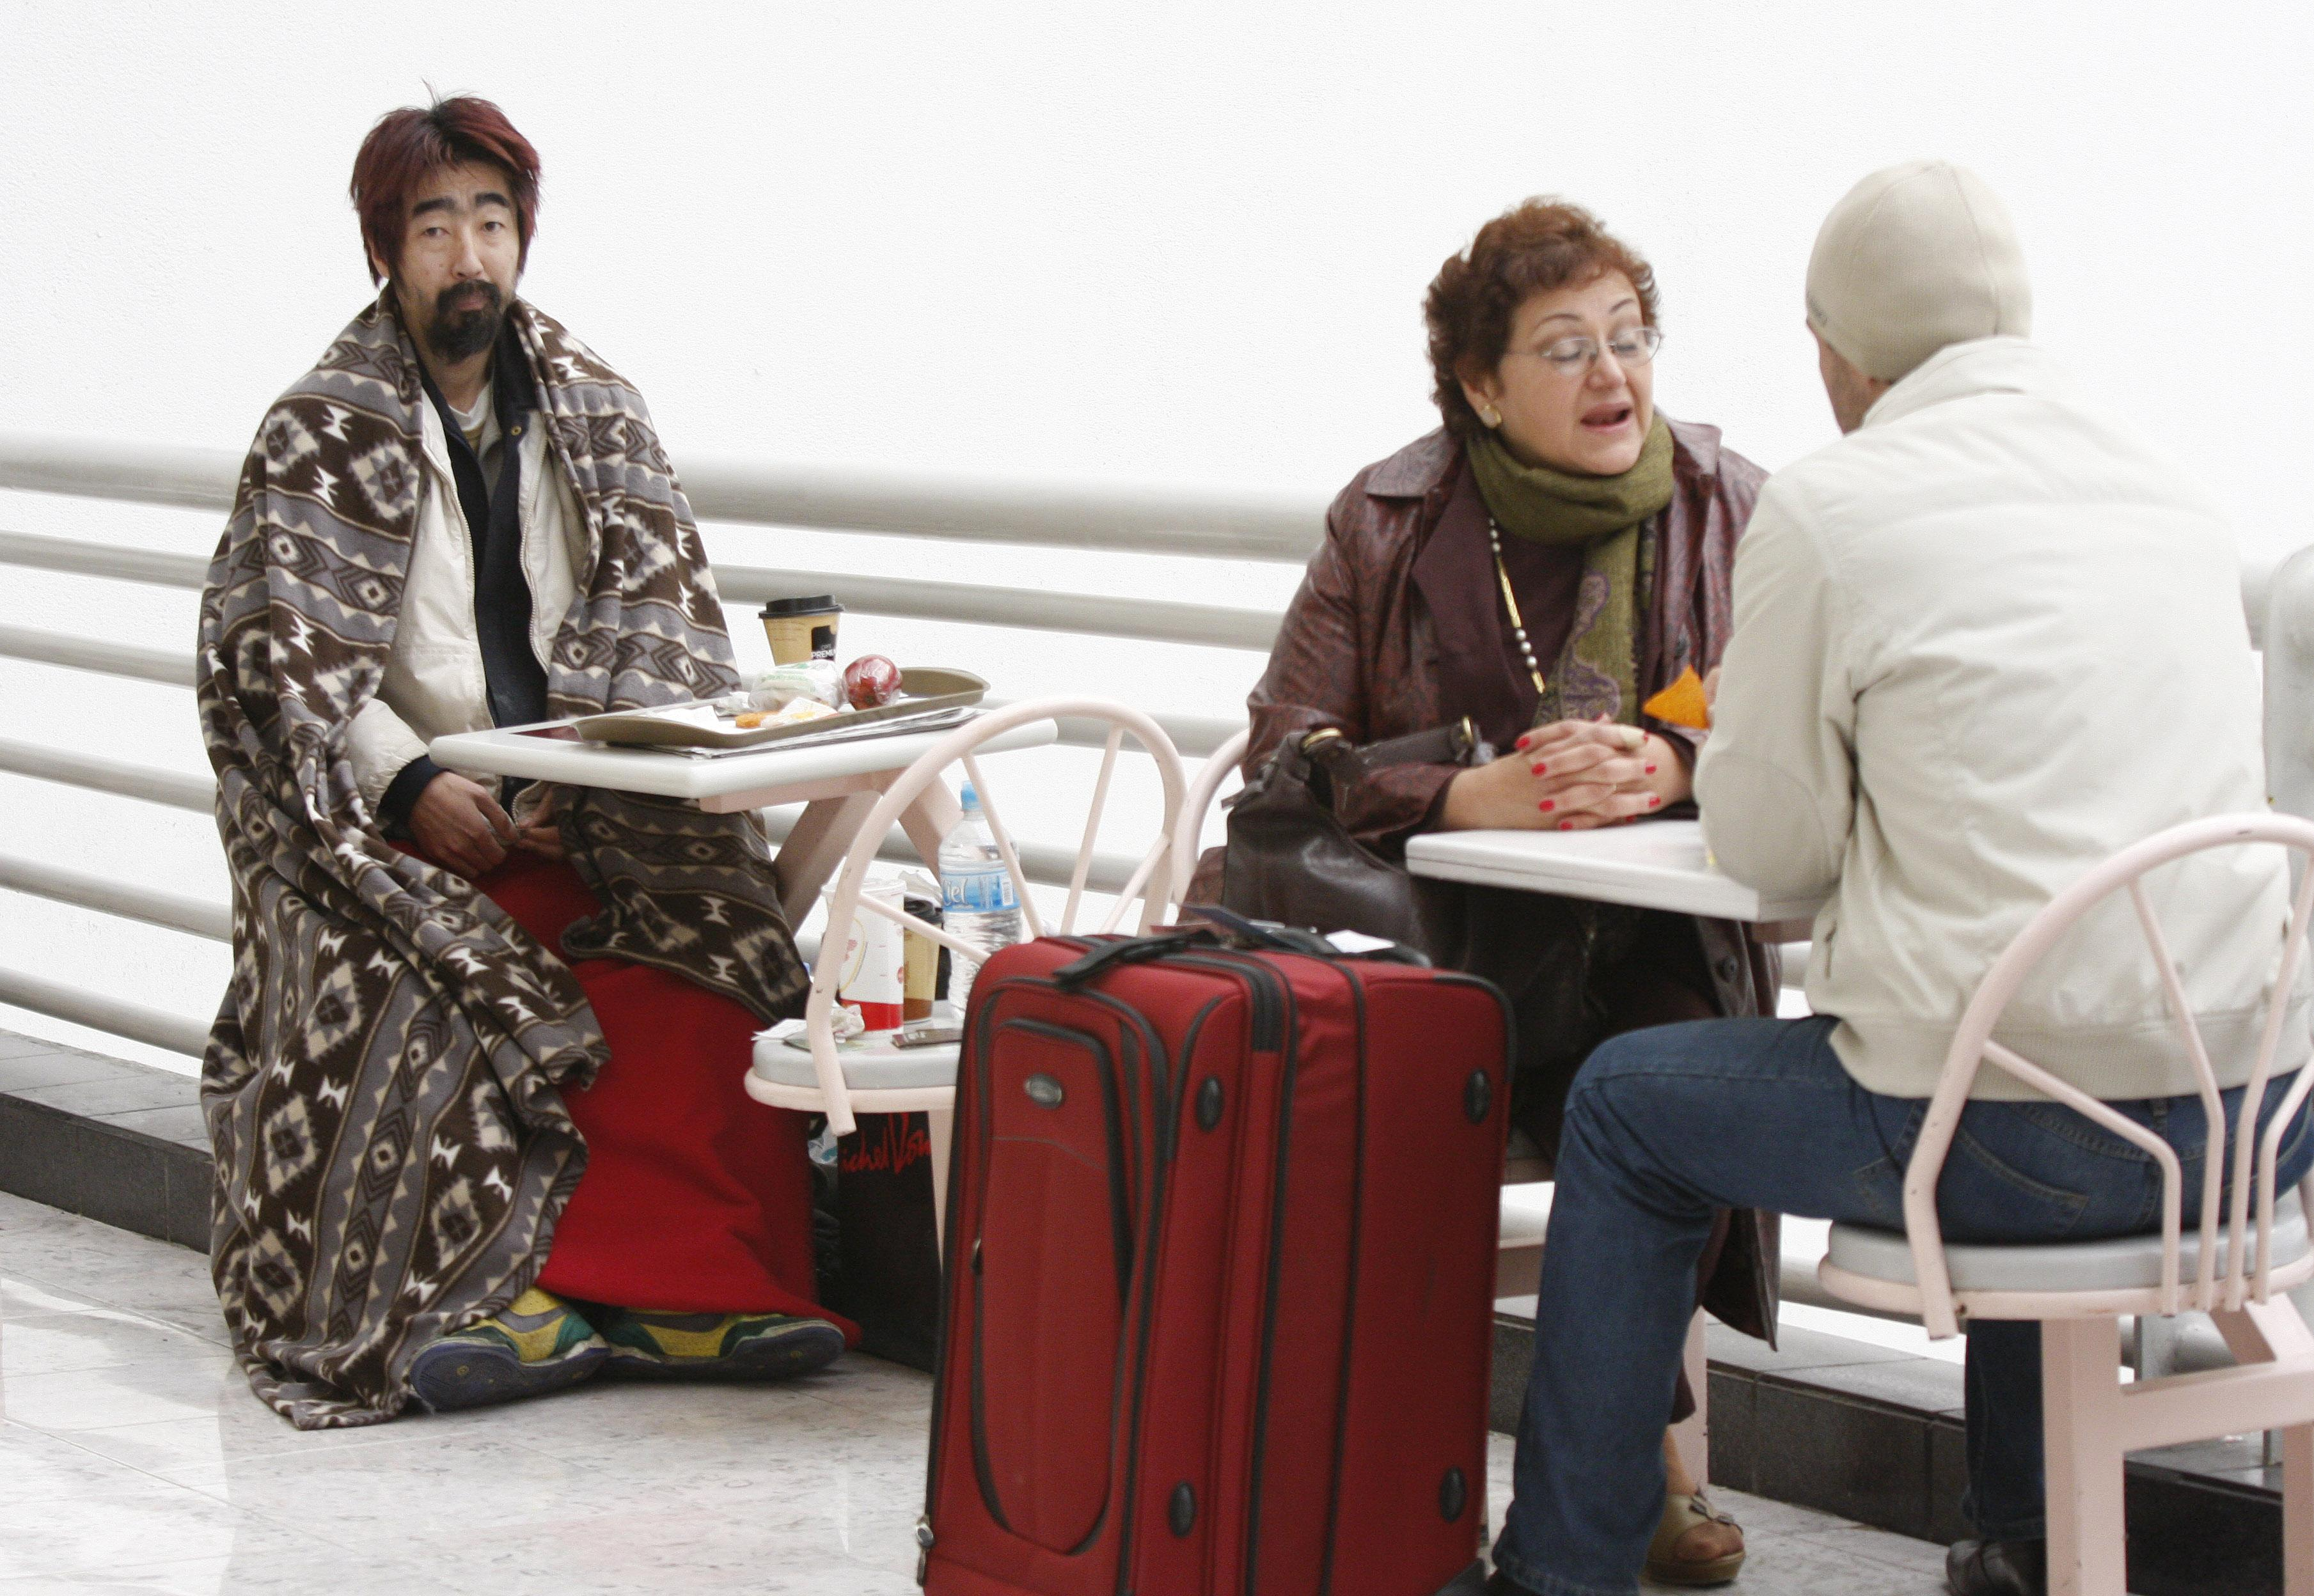 Hiroshi Nohara, of Japan, left, sits in Mexico City's main international airport, Mexico on Nov. 27.